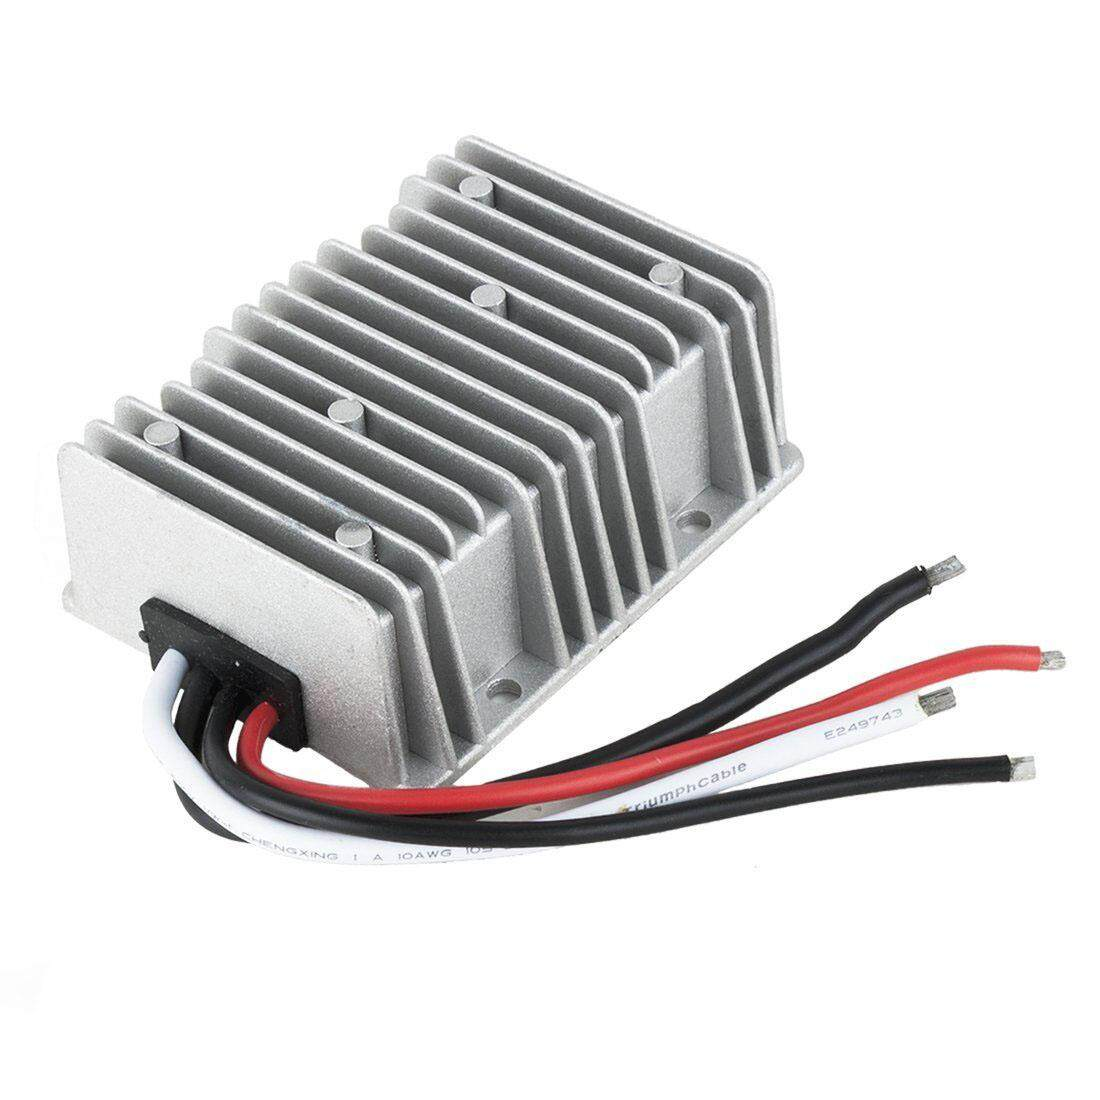 Waterproof Voltage Converter Regulator Dc 24v To Dc 12v 40a 480w By Tobbehere.